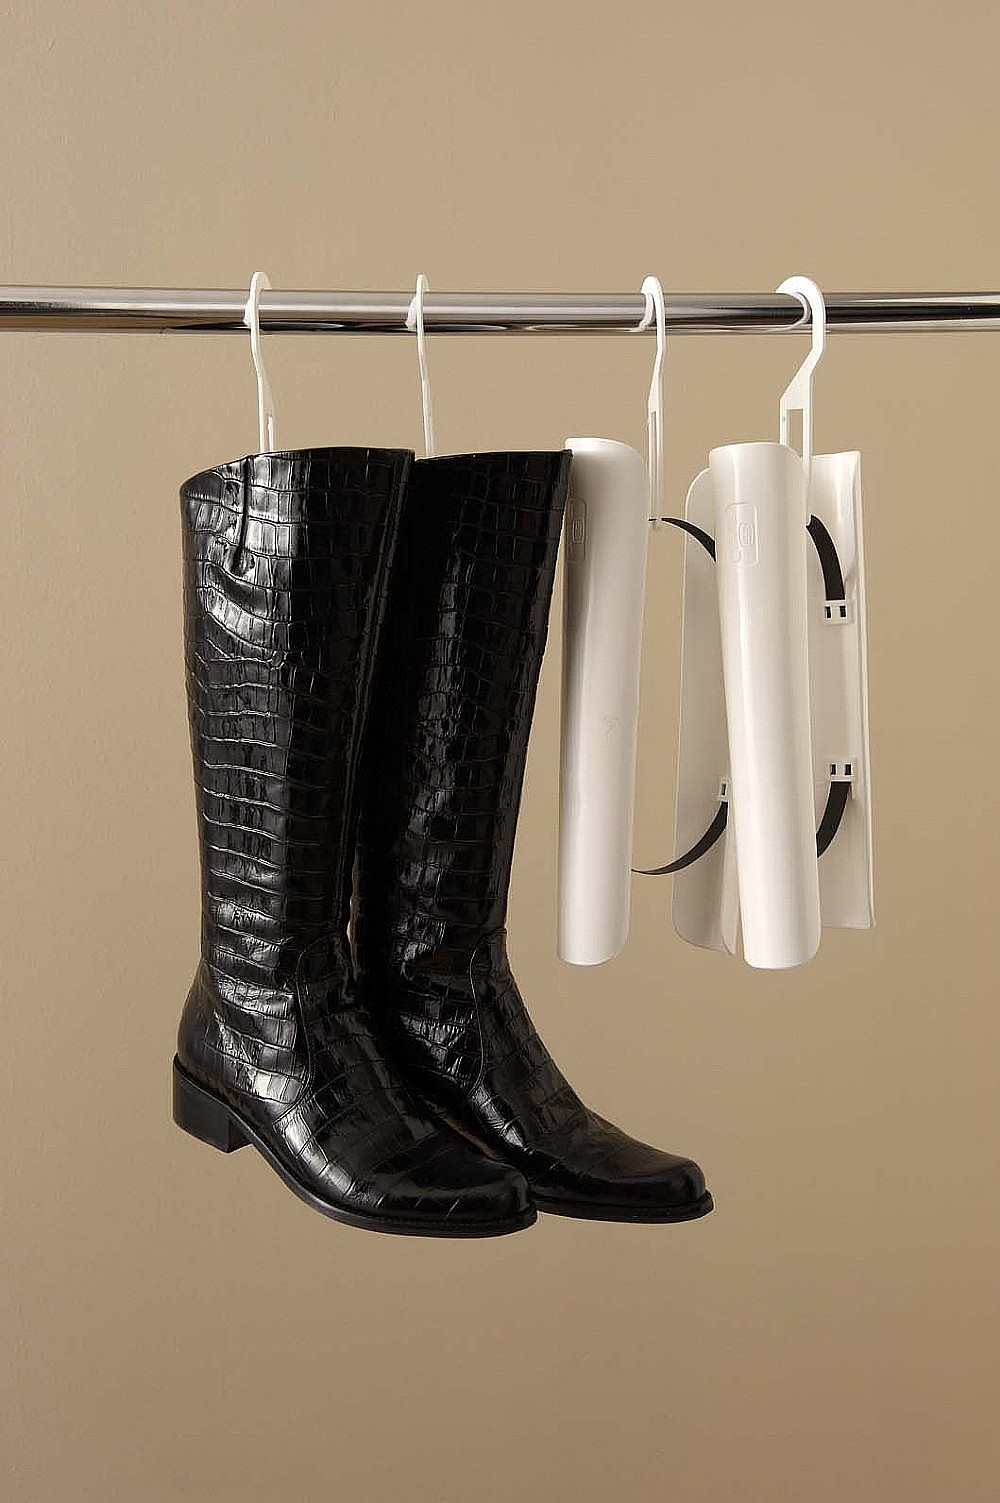 Metal Rod Idea For Hanging Boots